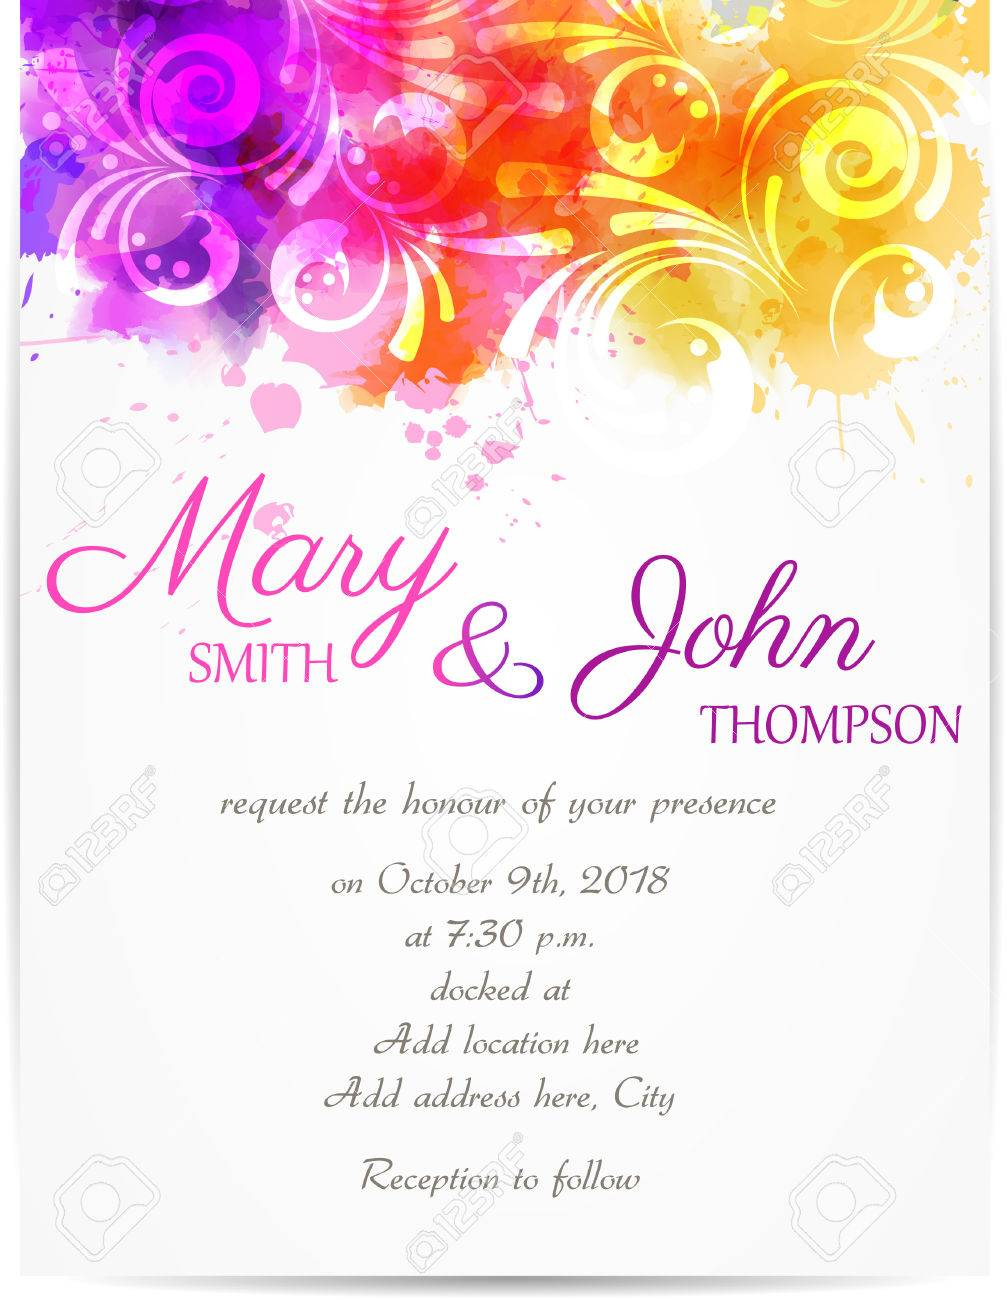 Wedding invitation template with abstract floral designs on vector wedding invitation template with abstract floral designs on watercolor background stopboris Image collections